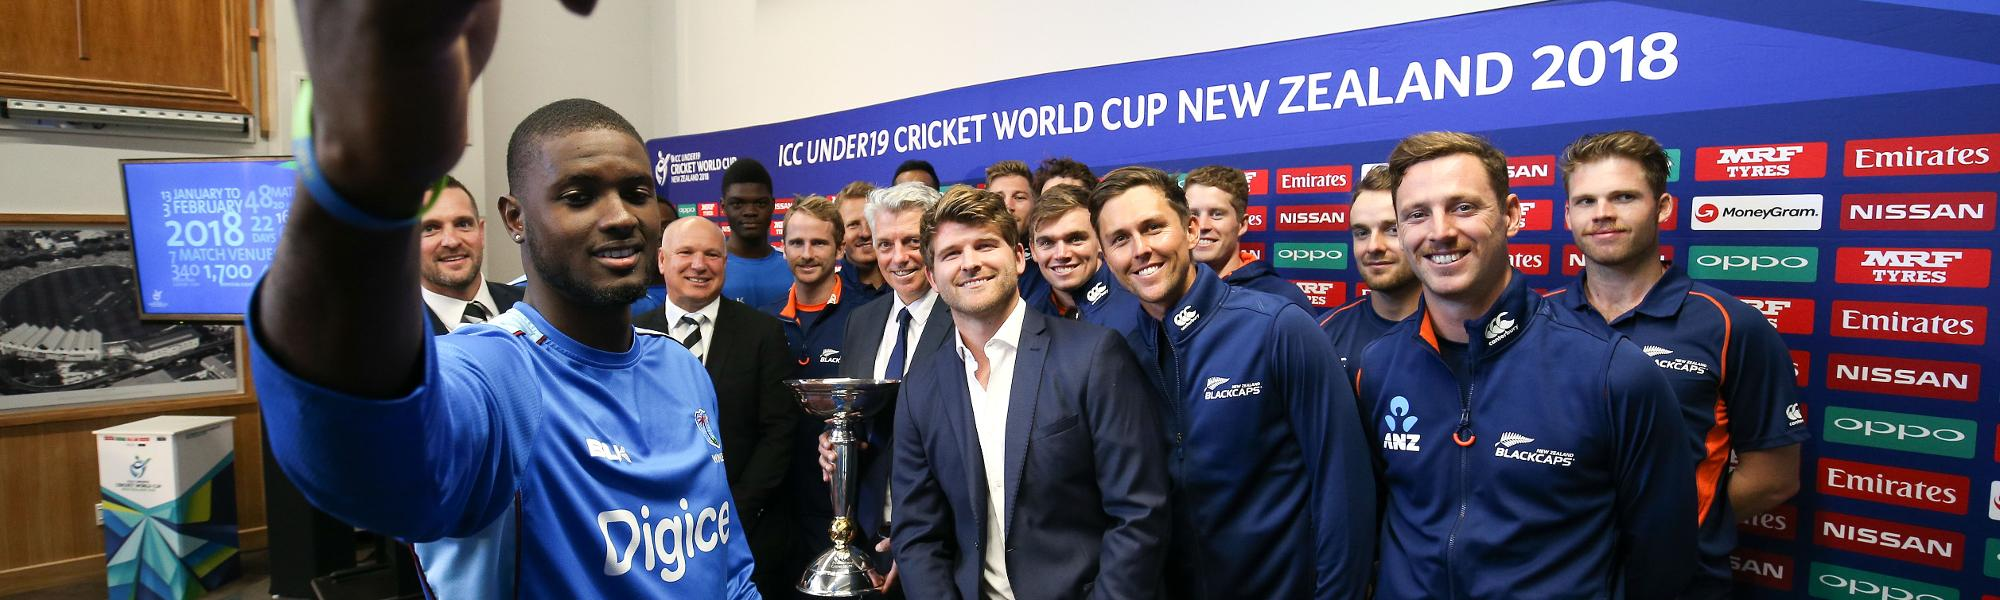 Windies players at launch of the ICC U19 Cricket World Cup 2018 in Wellington.